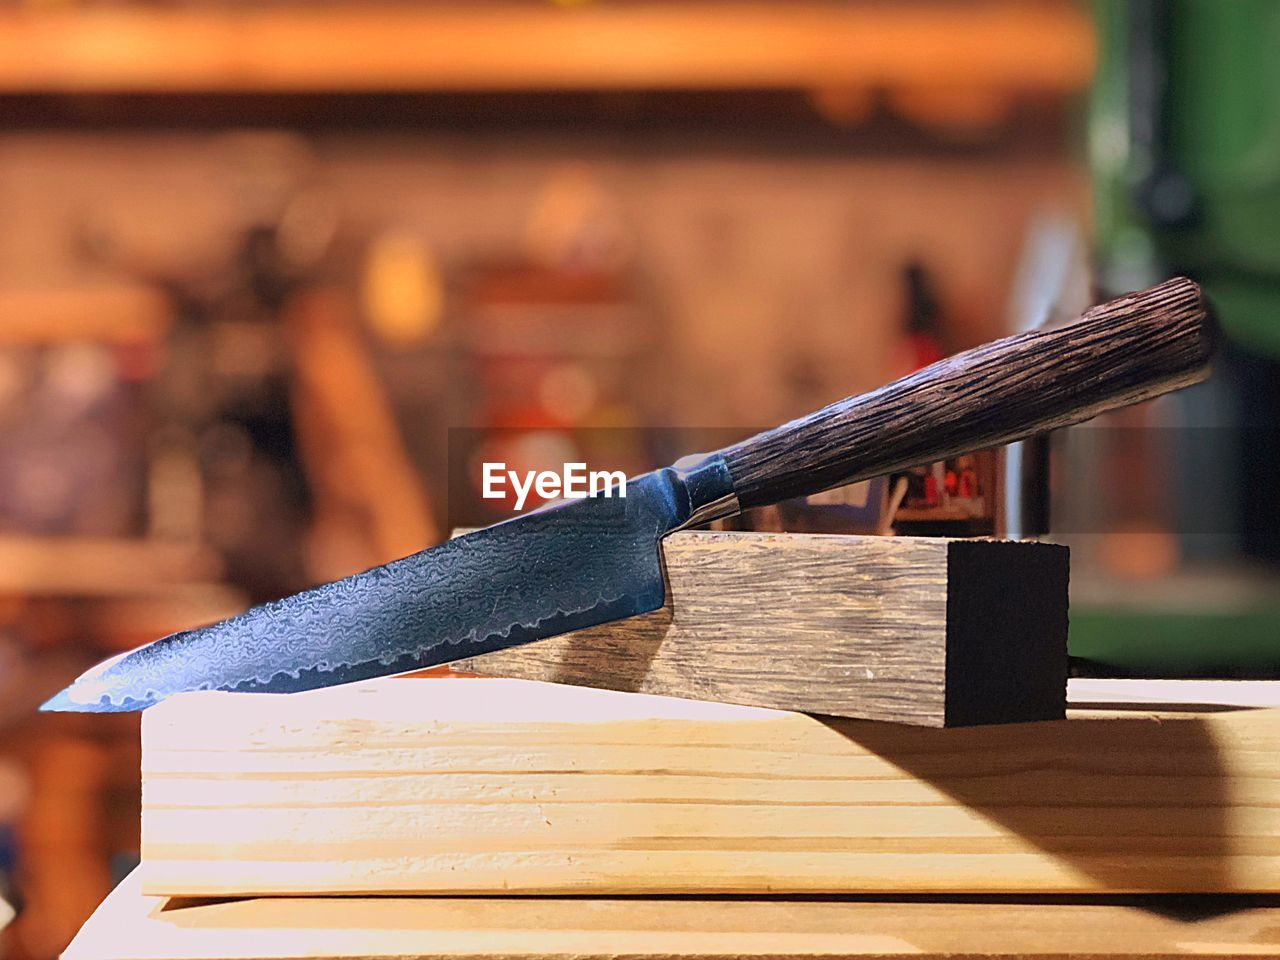 wood - material, focus on foreground, table, book, publication, still life, close-up, indoors, no people, education, wisdom, literature, stack, workshop, tool, sunlight, selective focus, day, group of objects, hand tool, hardcover book